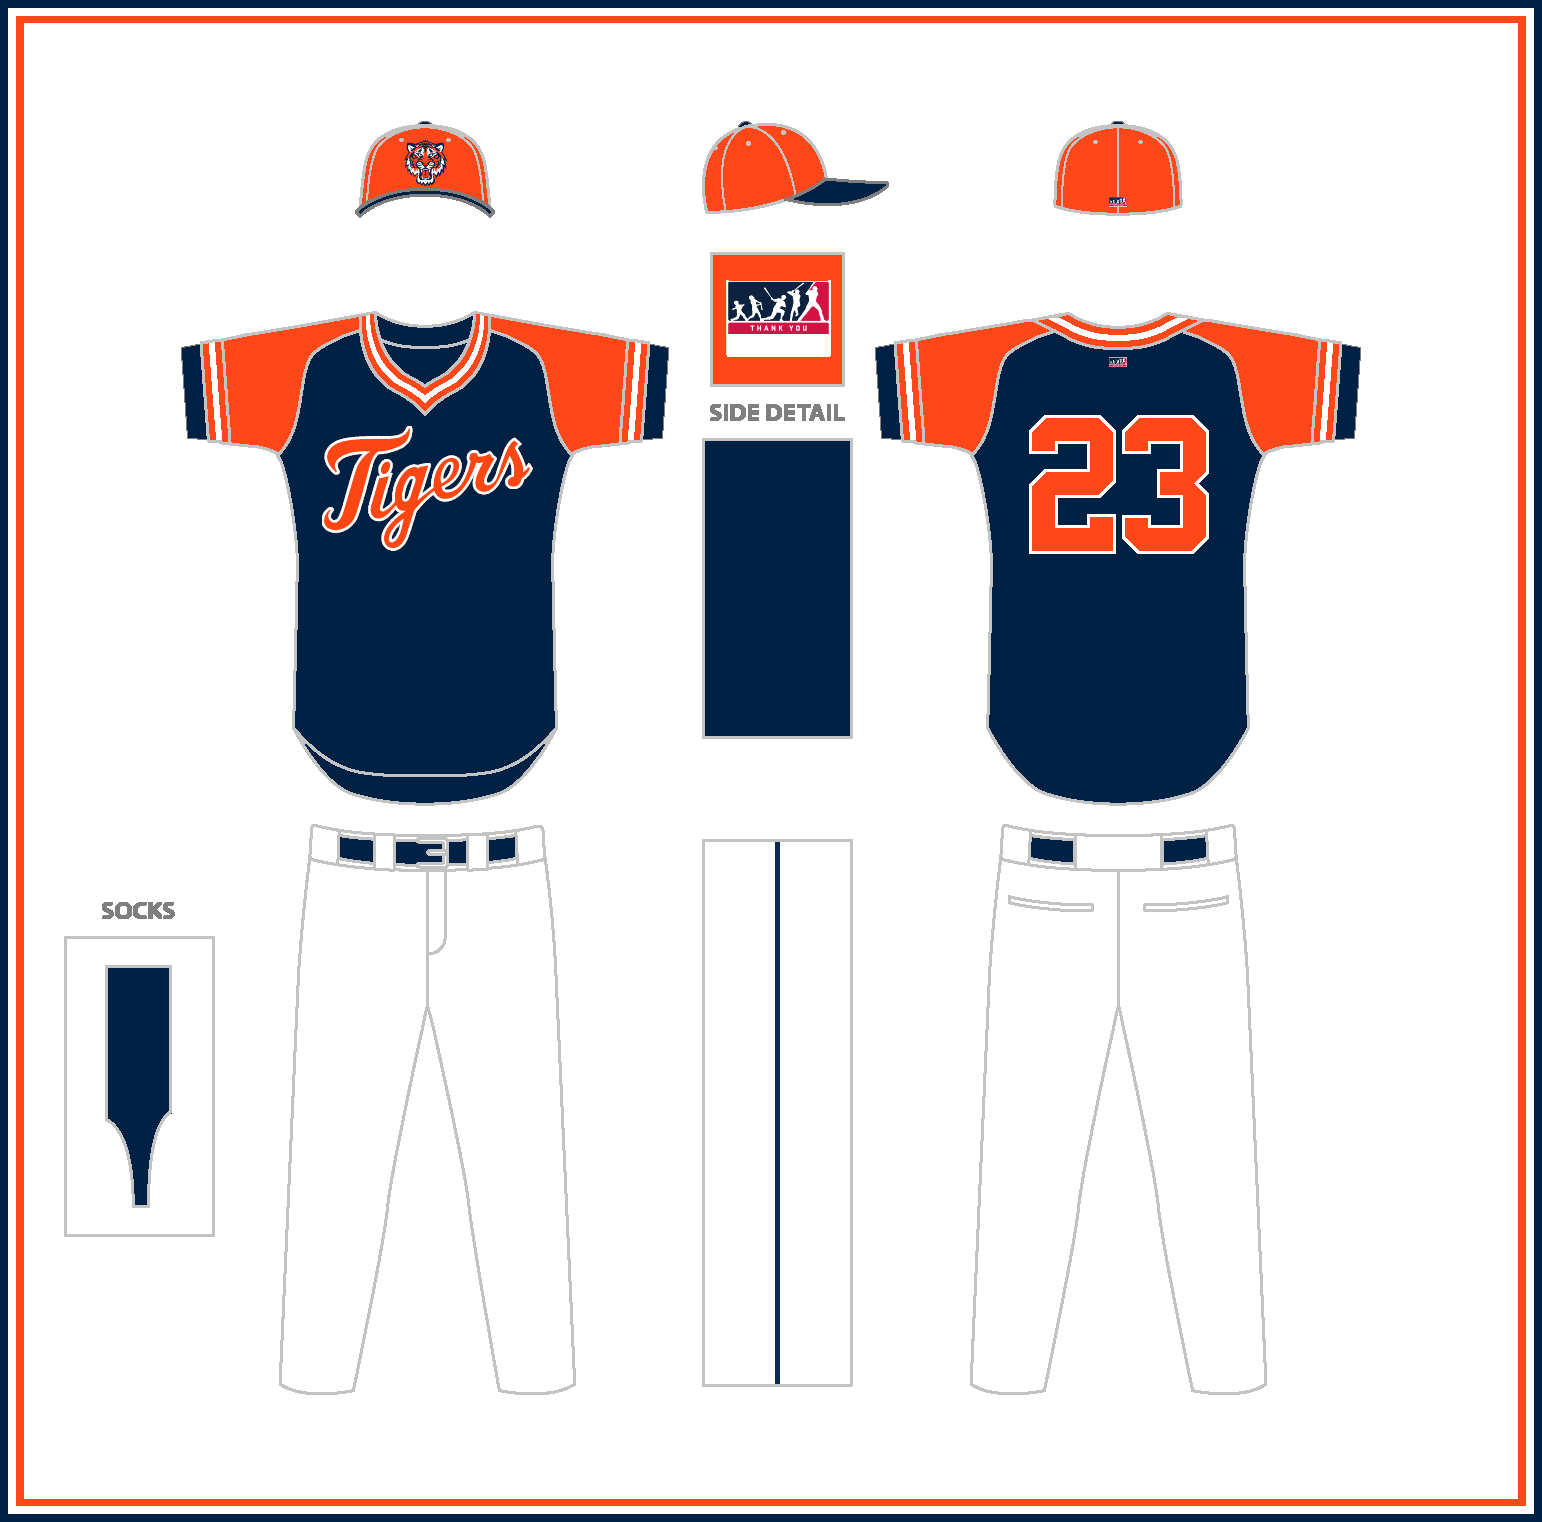 Tigers_w_outline.png